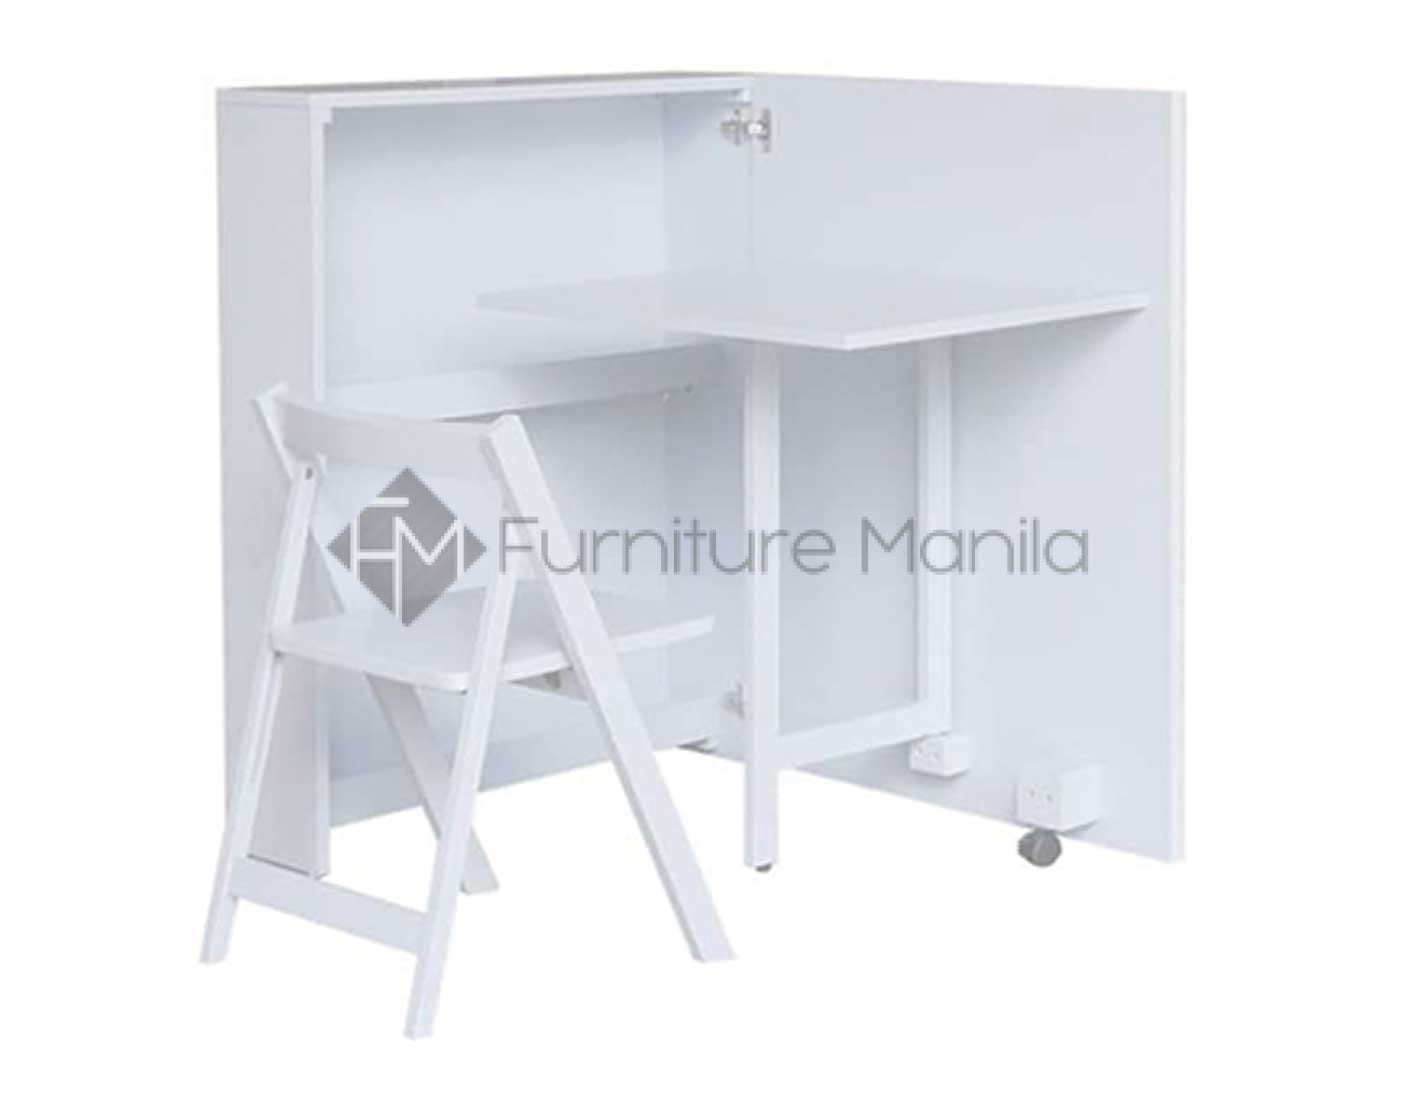 - Buy 707 FOLDABLE TABLE AND CHAIR Furniture Manila